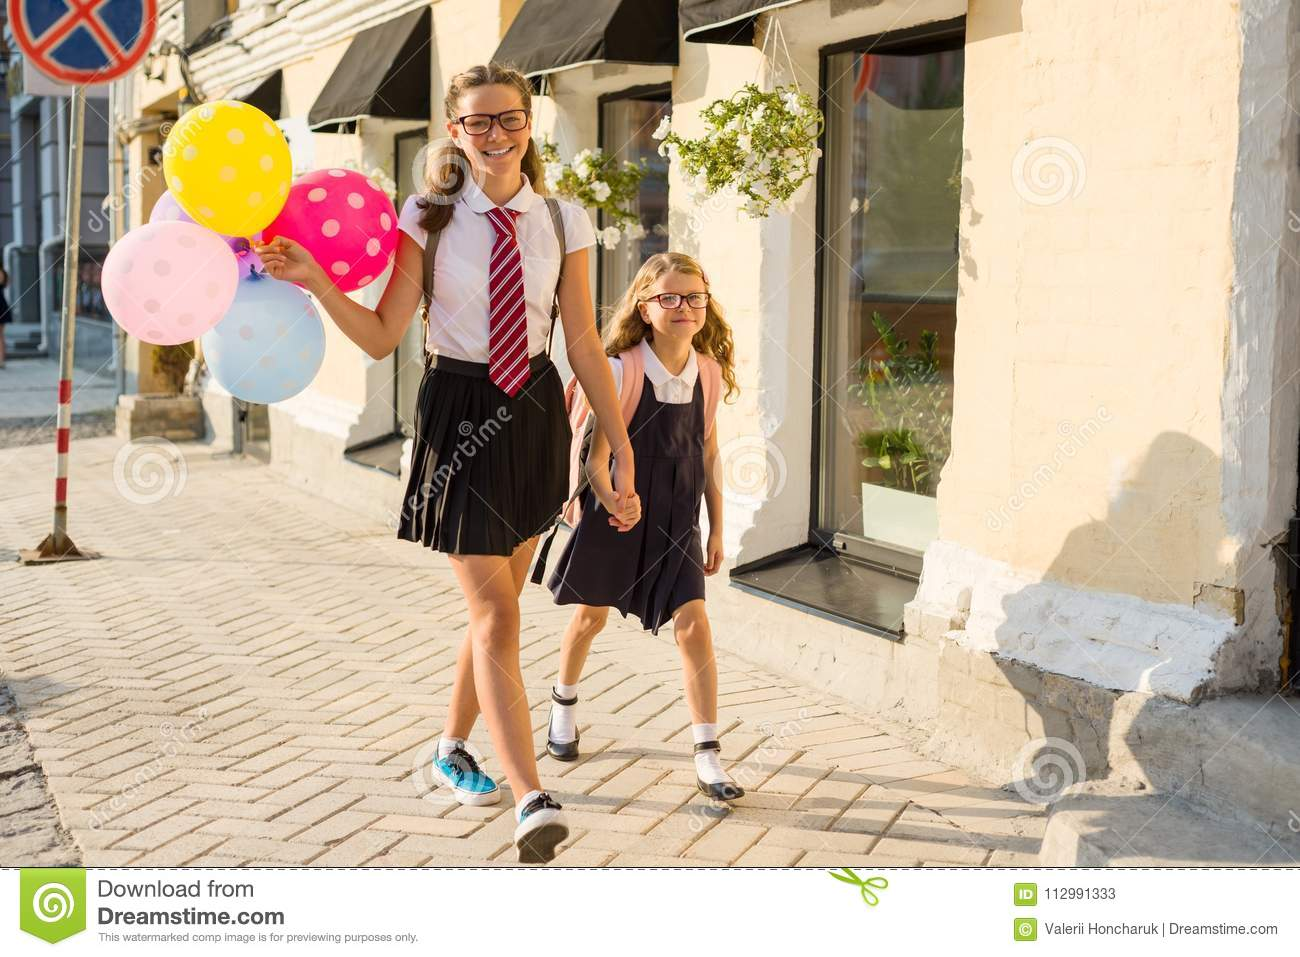 Two girls are walking along the street with colorful balloons. Children in school uniform, glasses, backpack